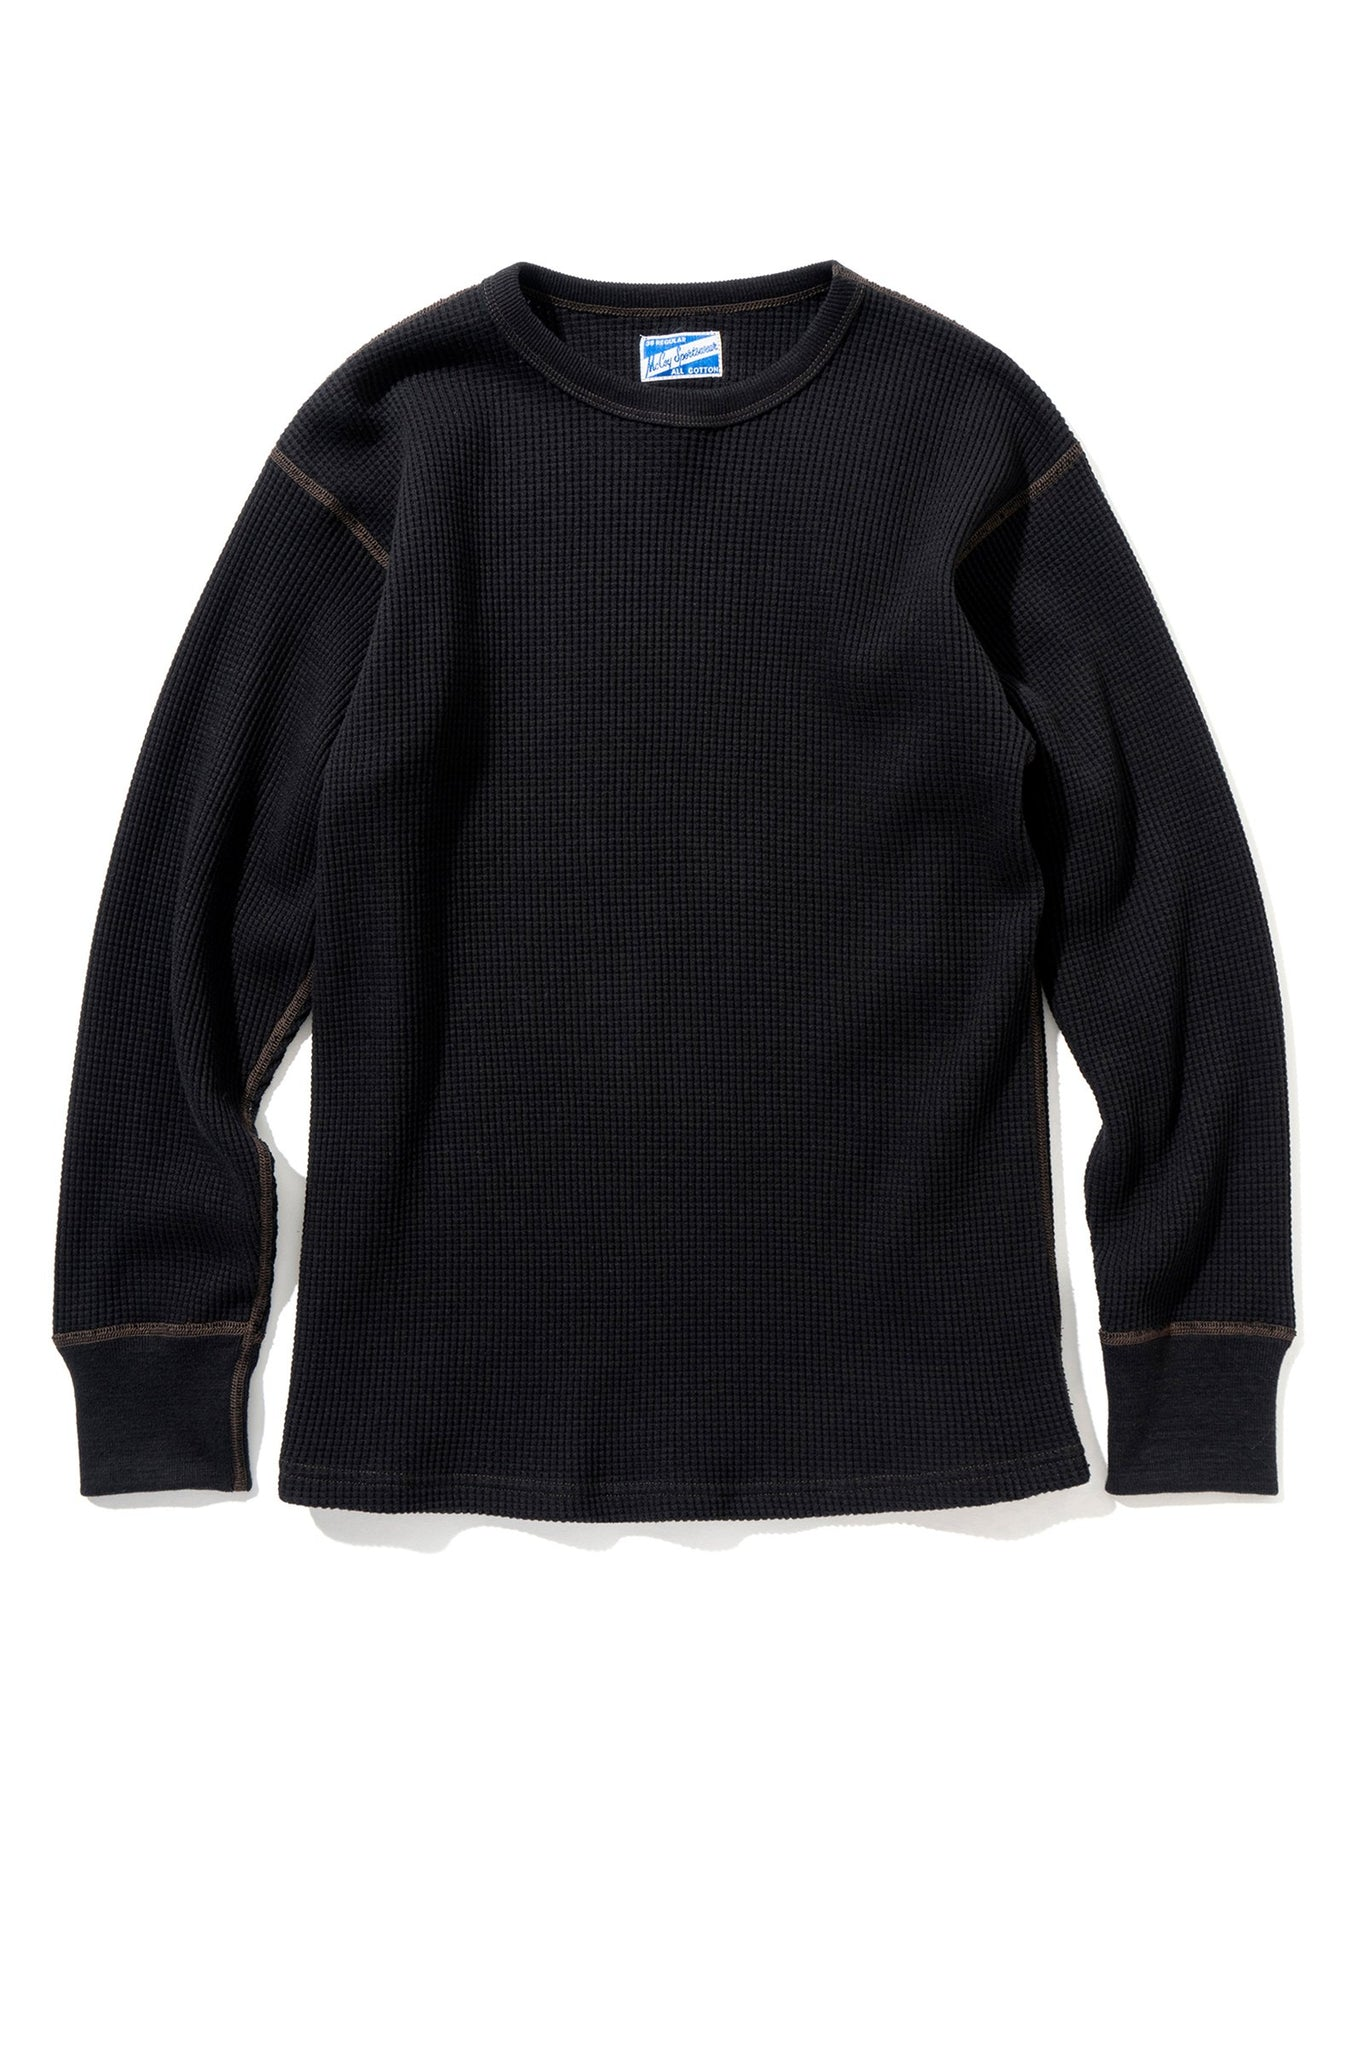 TUBE KNIT THERMAL L/S